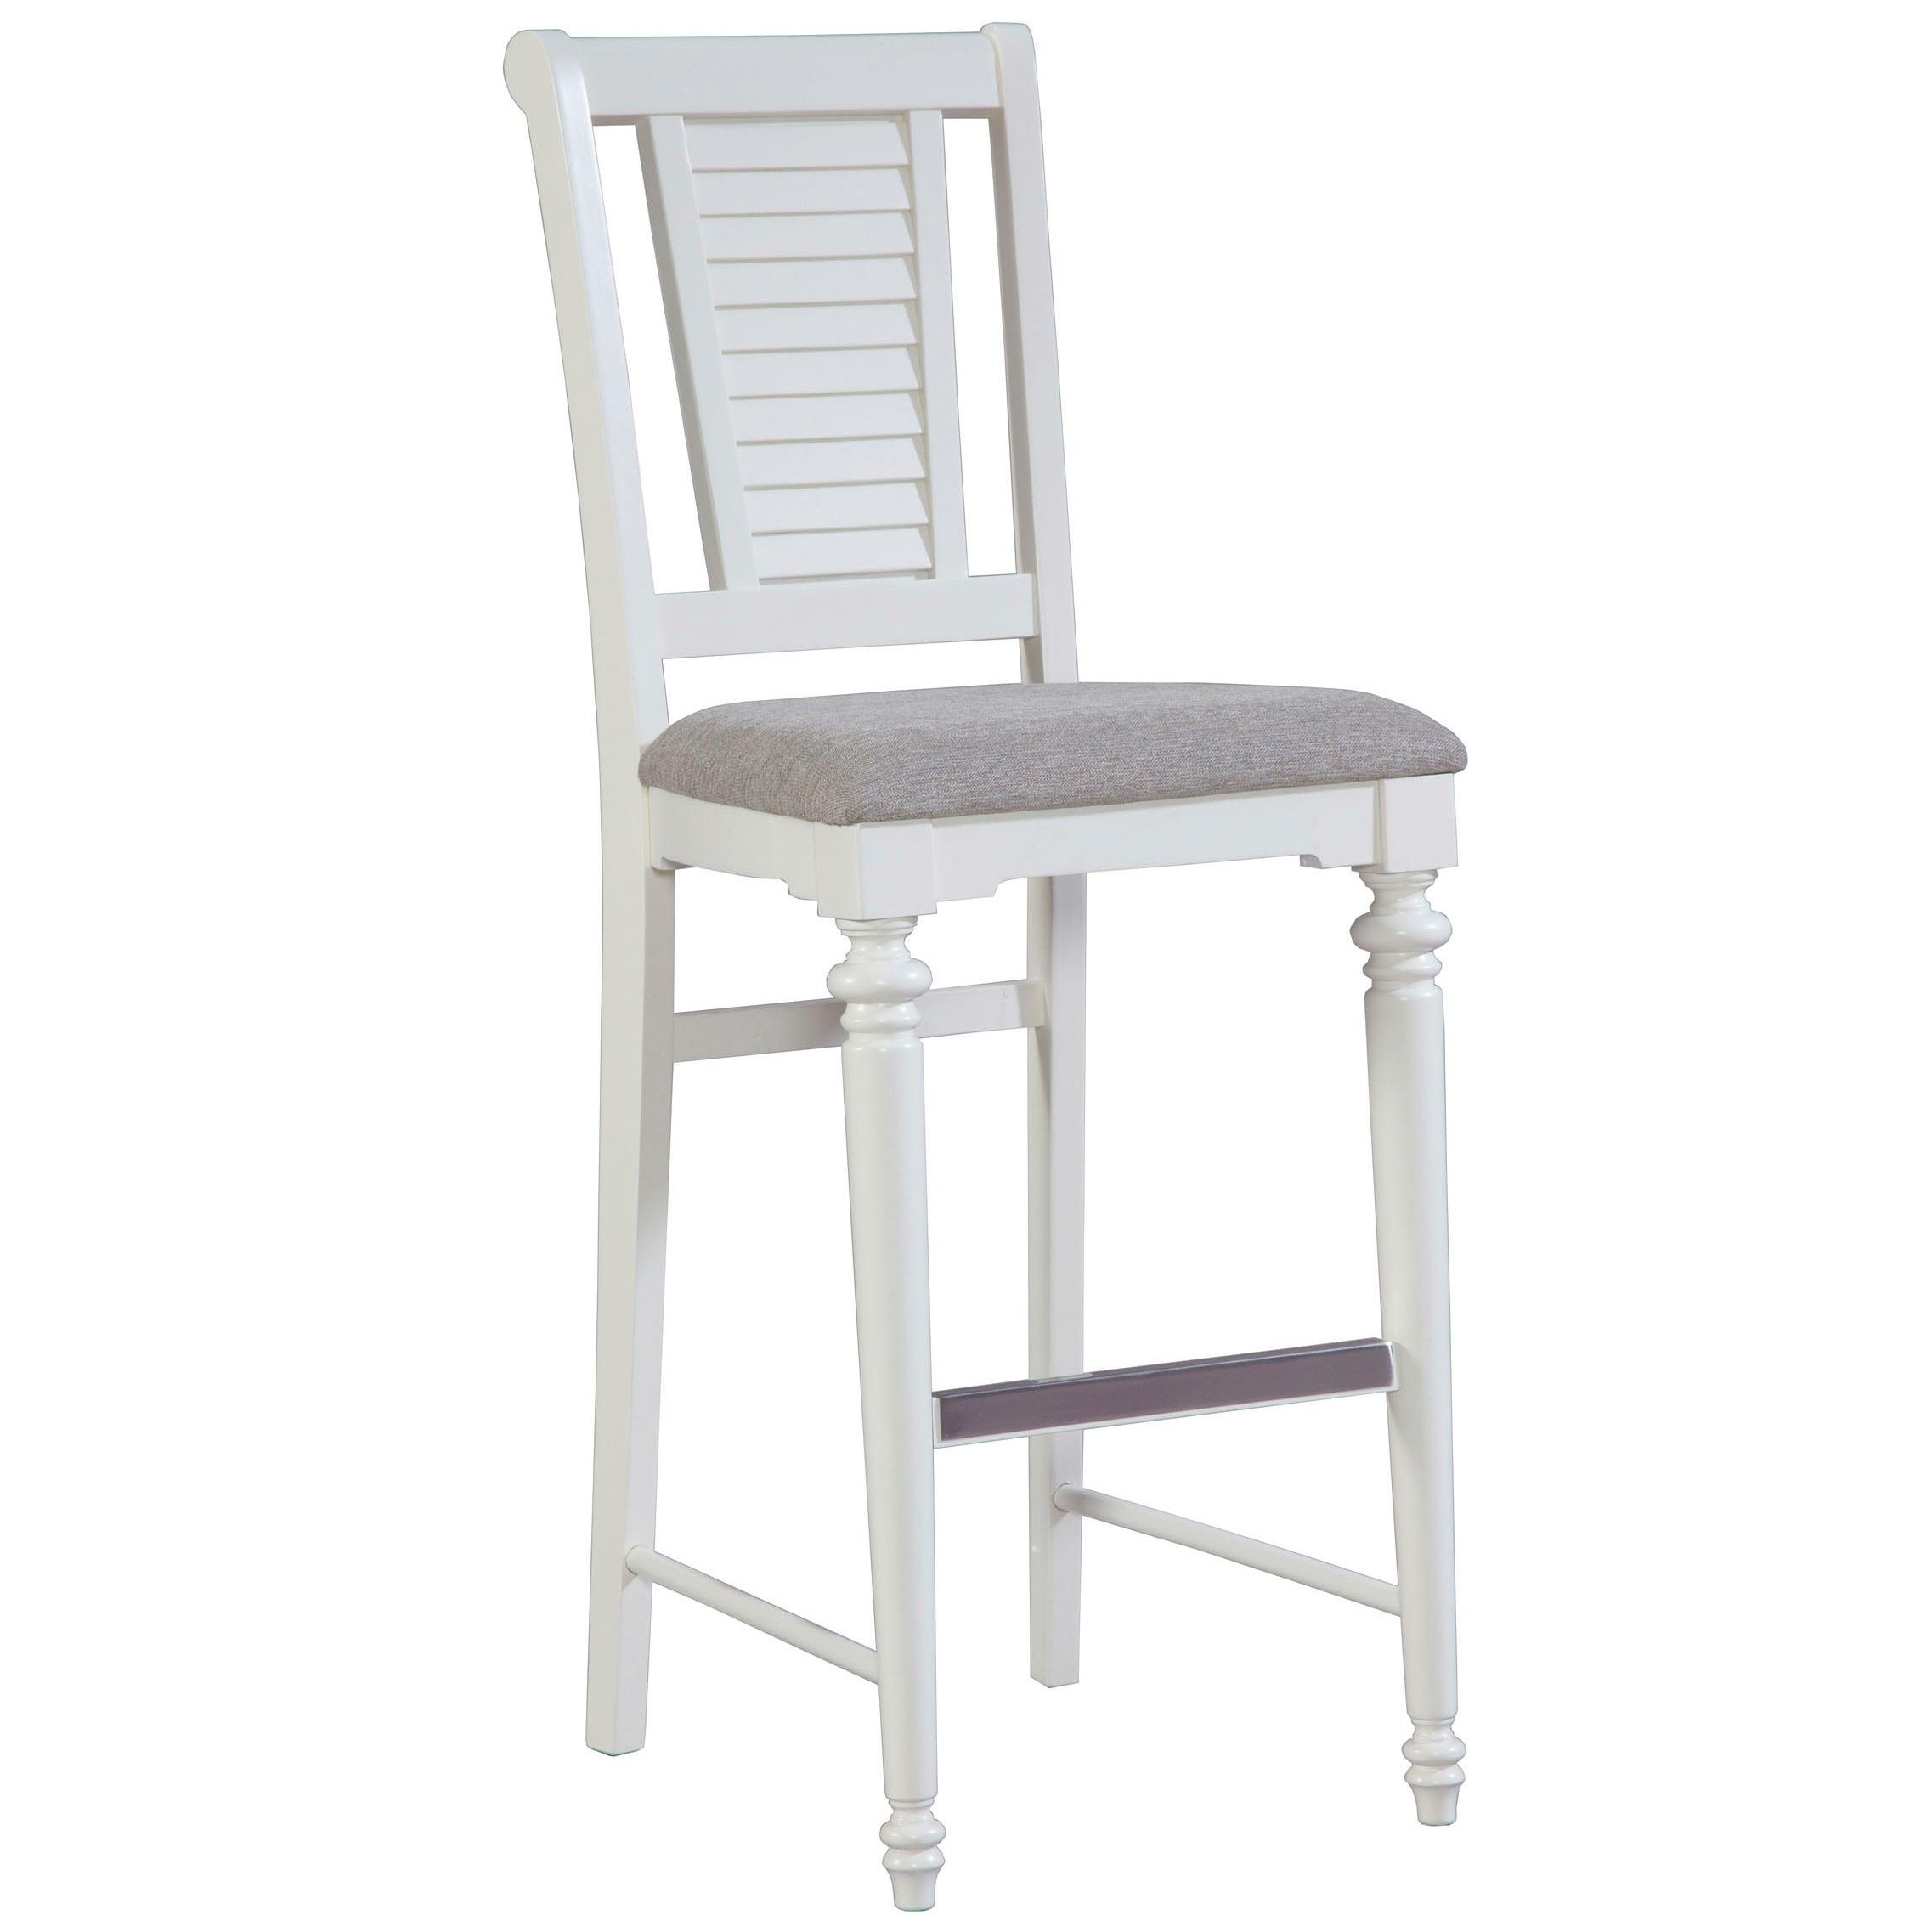 Broyhill Furniture Seabrooke Upholstered Bar Stool - Item Number: 4471-593